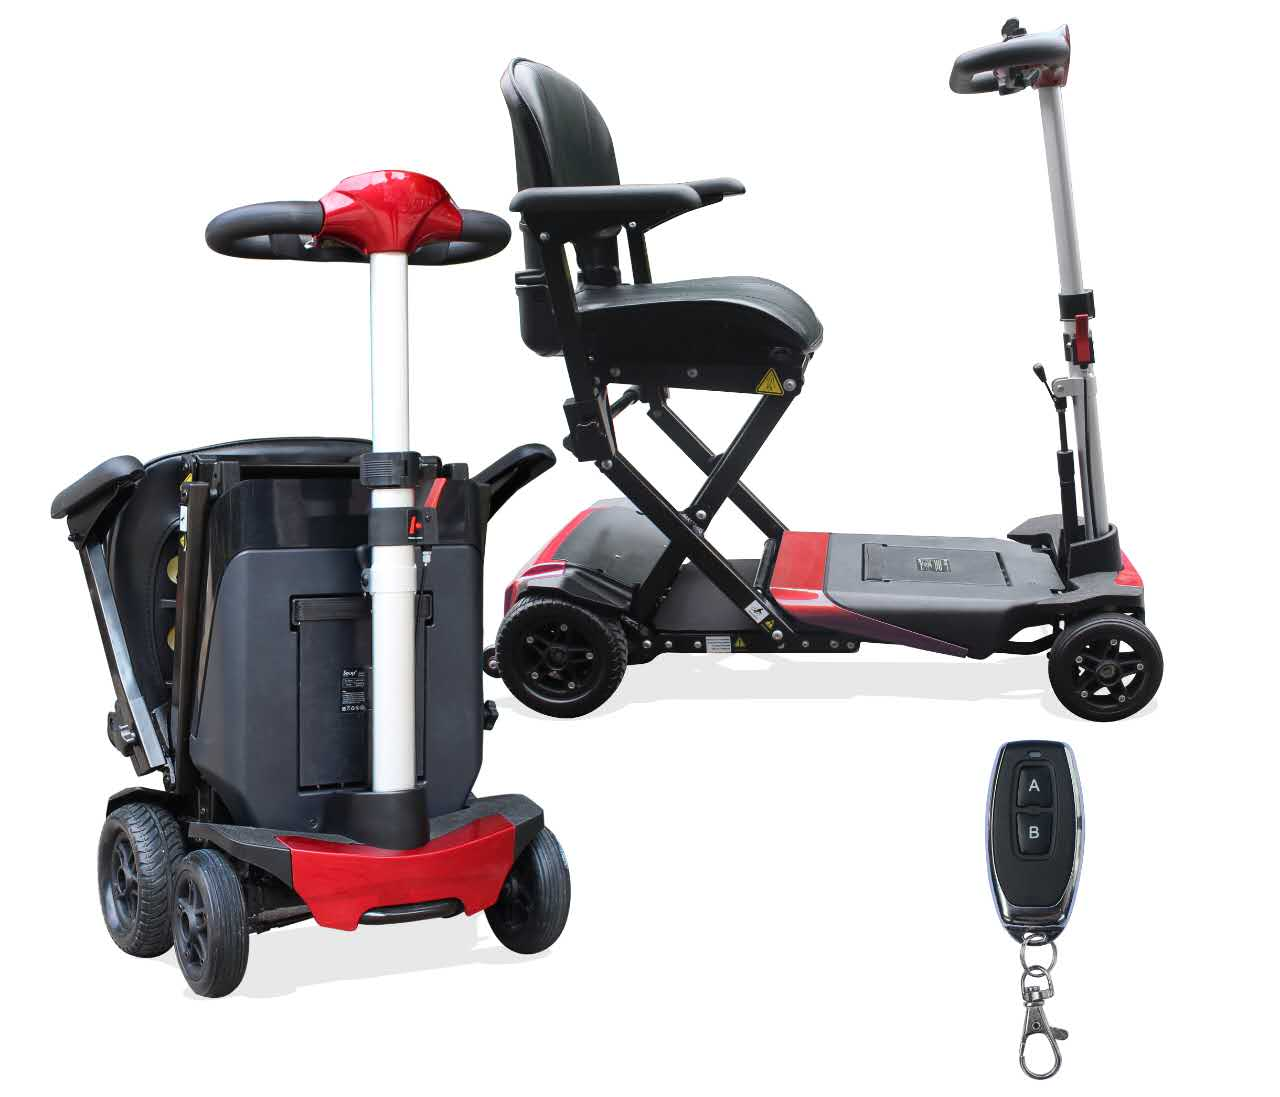 Mobility Scooters For Sale >> Solax Auto Fold Automatic Folding Travel Mobility Scooter - Portable Mobility